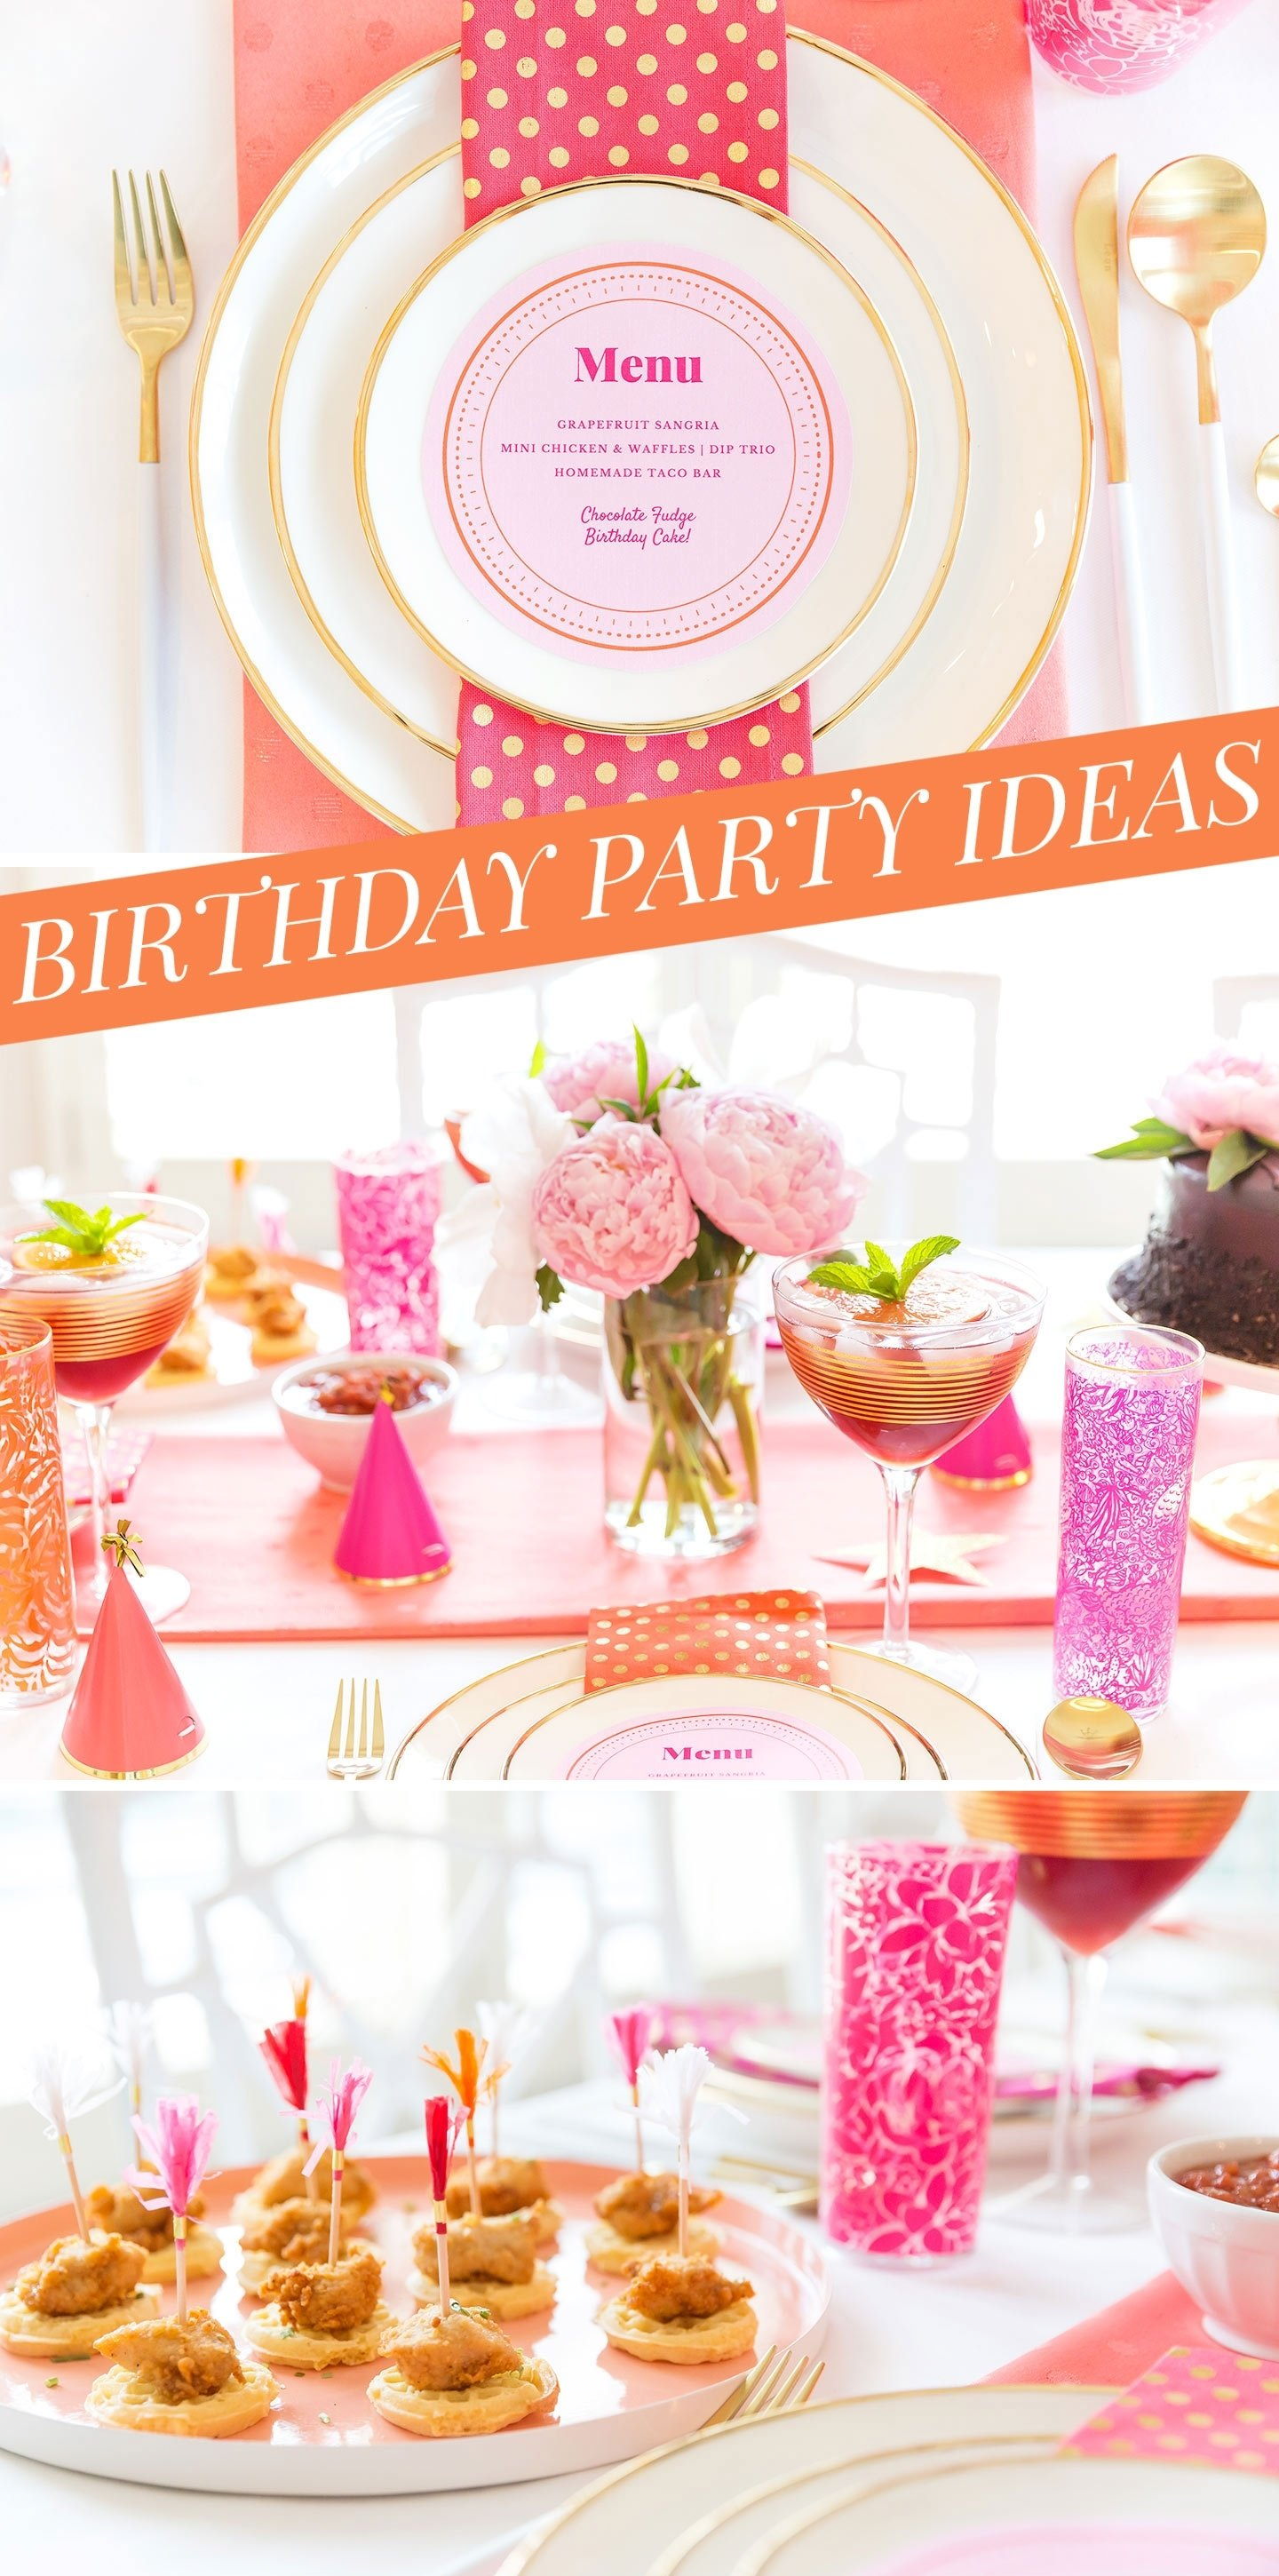 10 Unique Birthday Party Ideas For Adults creative adult birthday party ideas for the girls food decor 3 2020